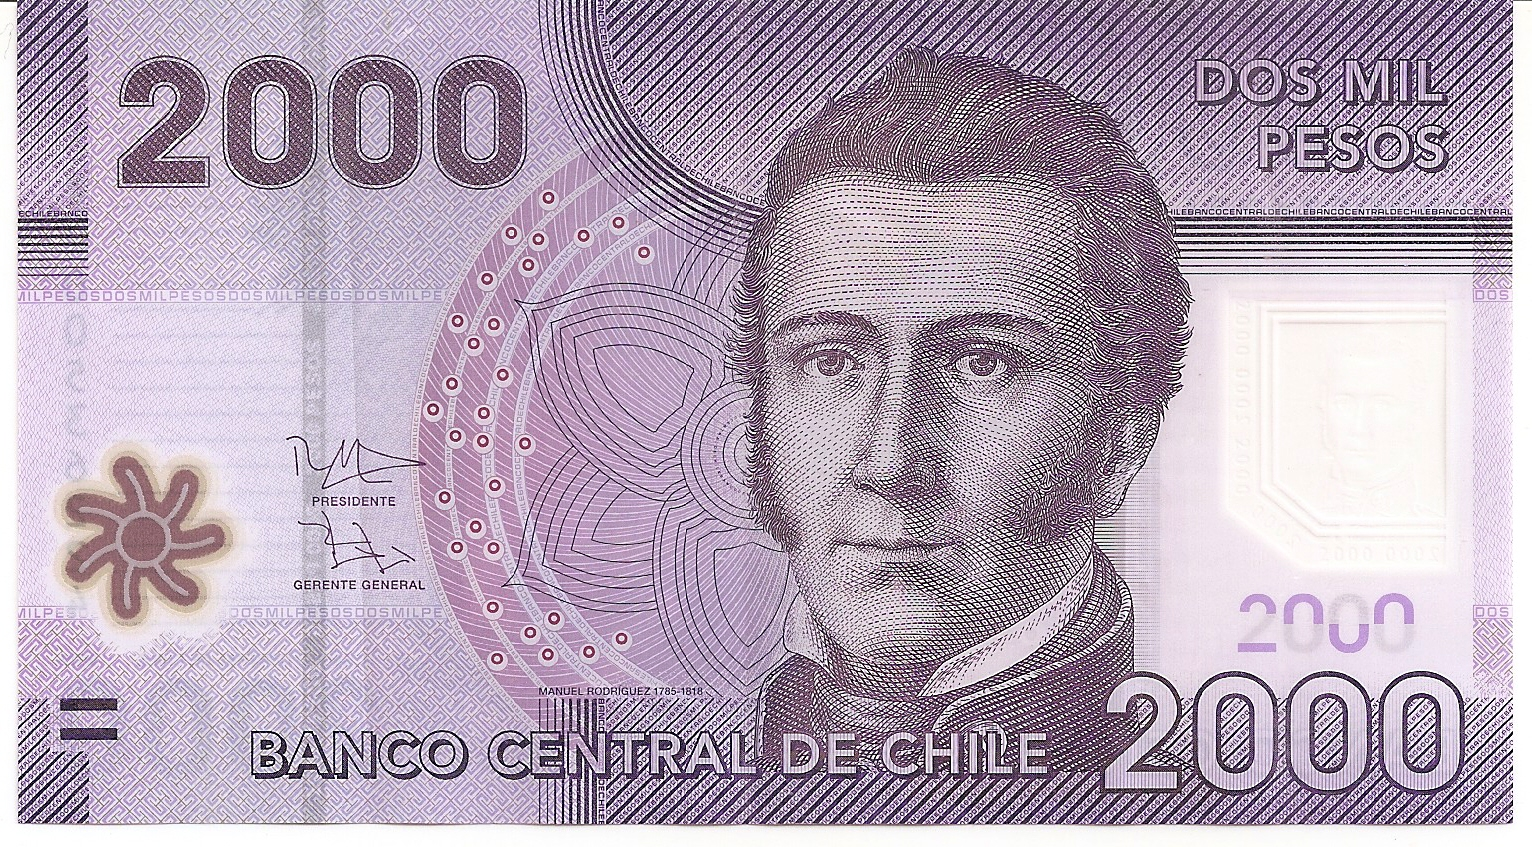 Coins And More 249 Currency Paper Money And Coinage Of Chile Pesos And Centavos Part Ii Historical Evolution Of Banknotes In Chile Historical Development Of Banknotes In Chile